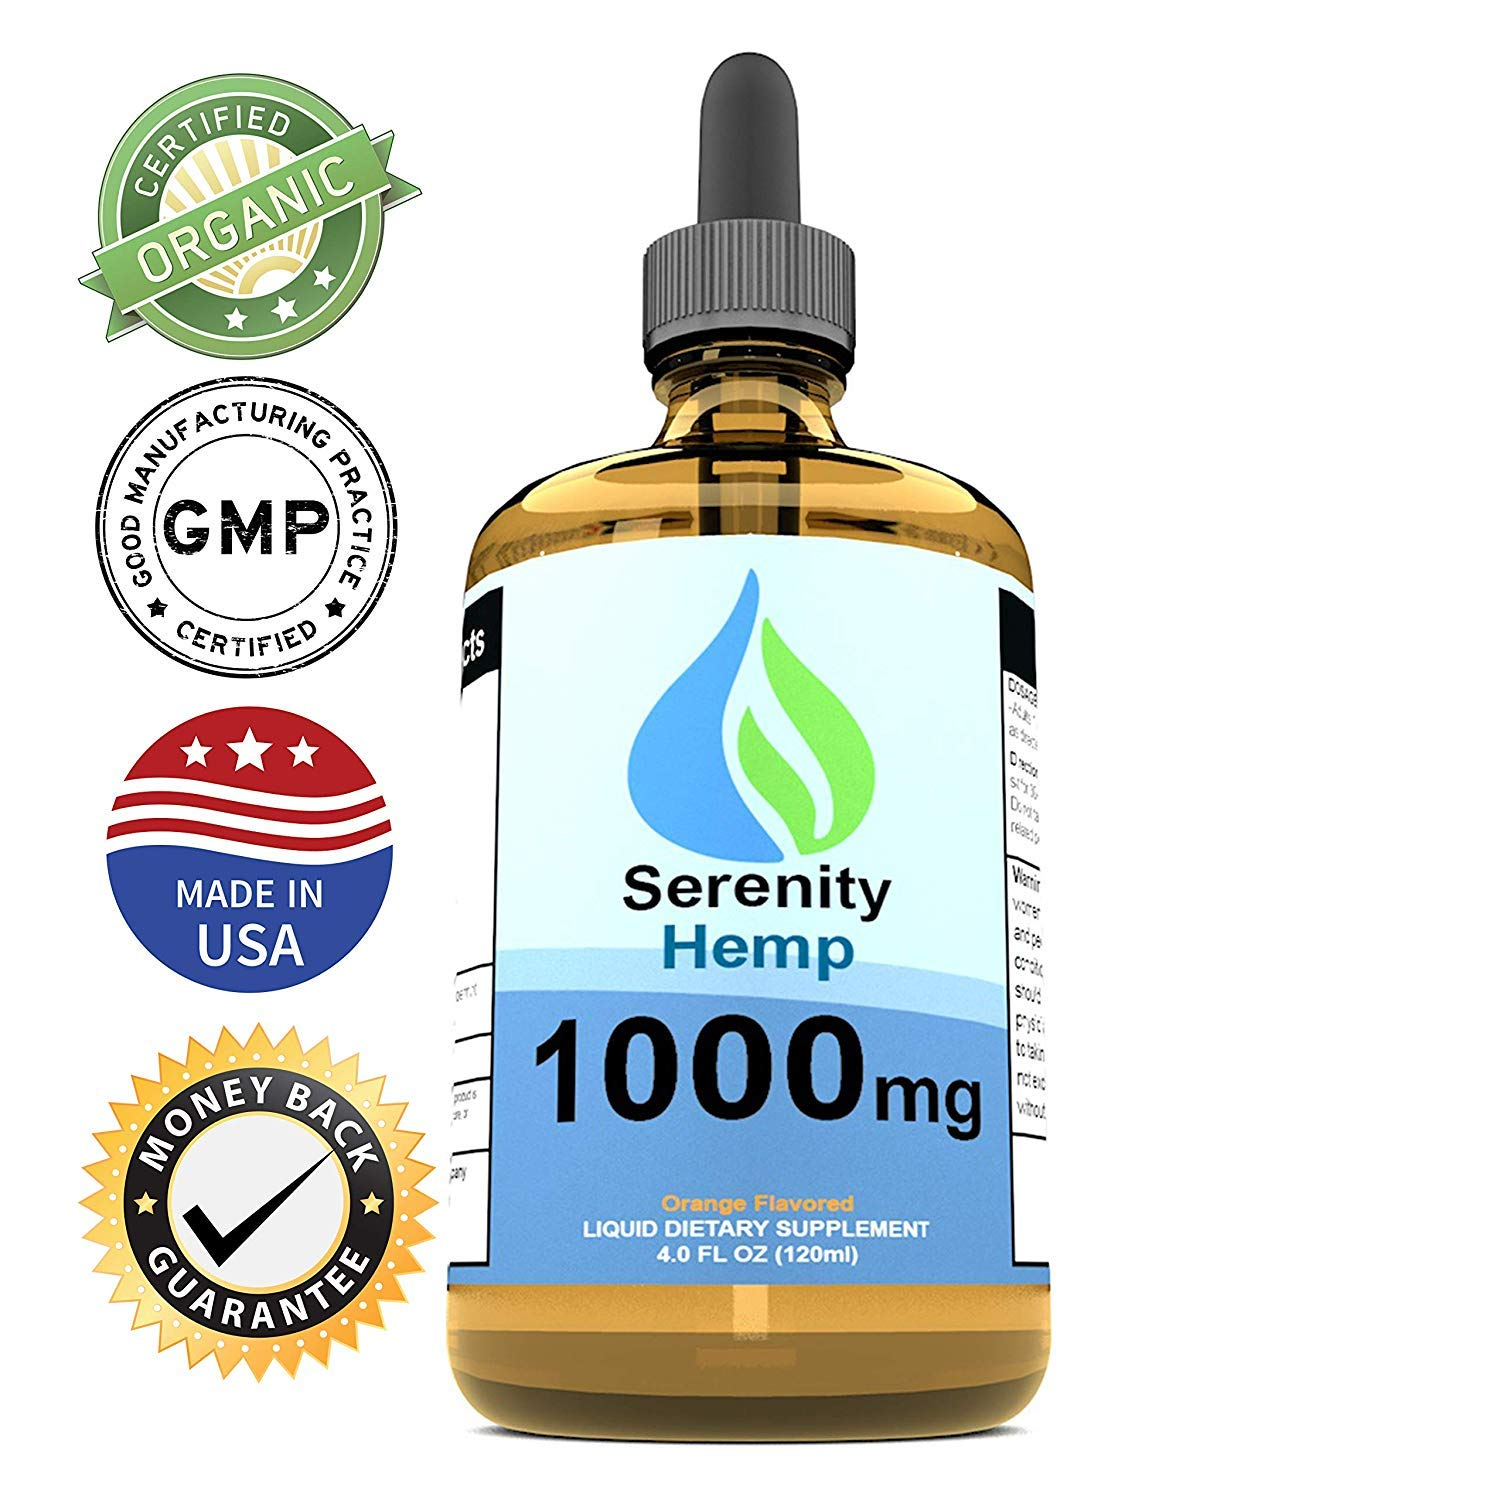 Serenity Hemp Oil - 4 fl oz 1000 mg Orange Flavored - Relief for Stress, Inflammation, Pain, Sleep, Anxiety, Depression, Nausea - Rich in Vitamin E, Vitamin B, Omega 3,6,9 and More!  by Serenity Hemp Company